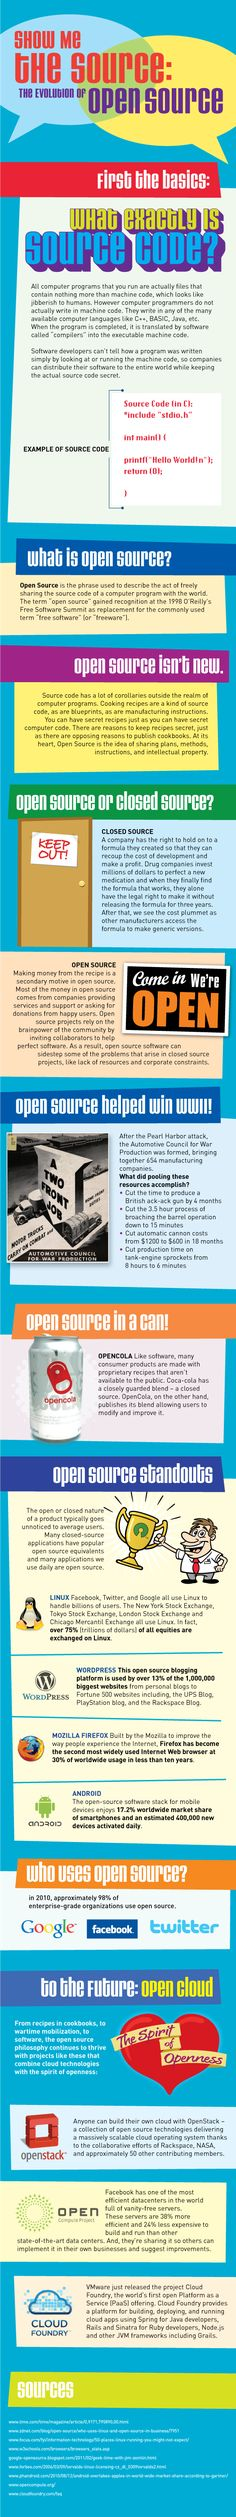 Infographic - Open Cloud Computing : History of Open Source Coding and the Open Cloud